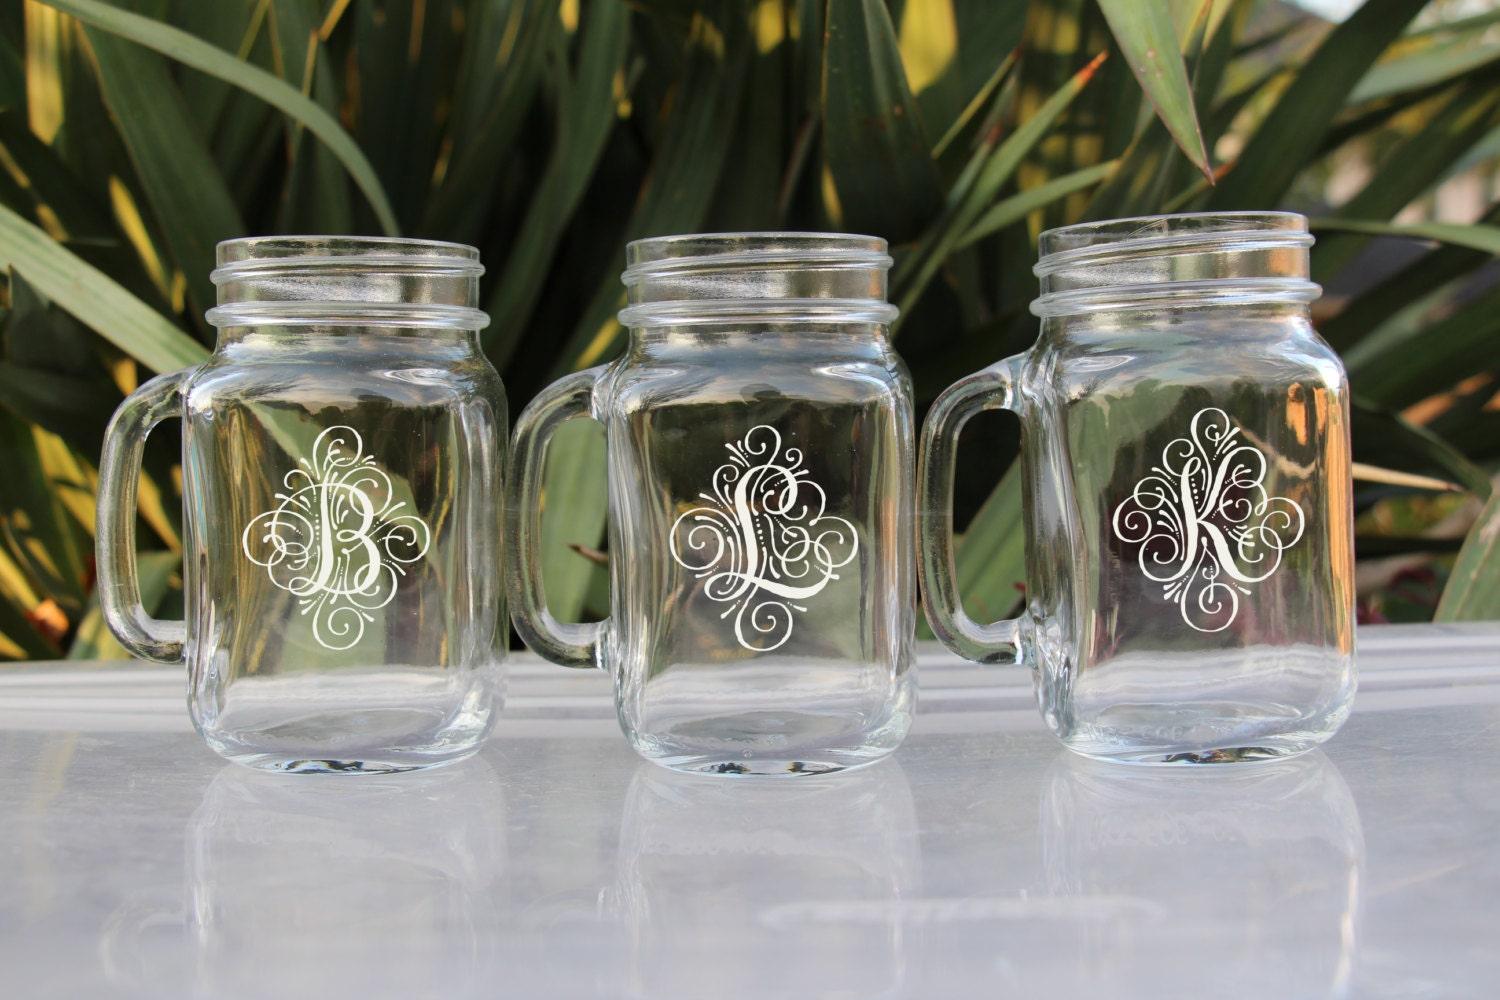 Engraved Wedding Party Gifts: 3 Personalized Beer Mug Engraved Mason Jar Glasses With